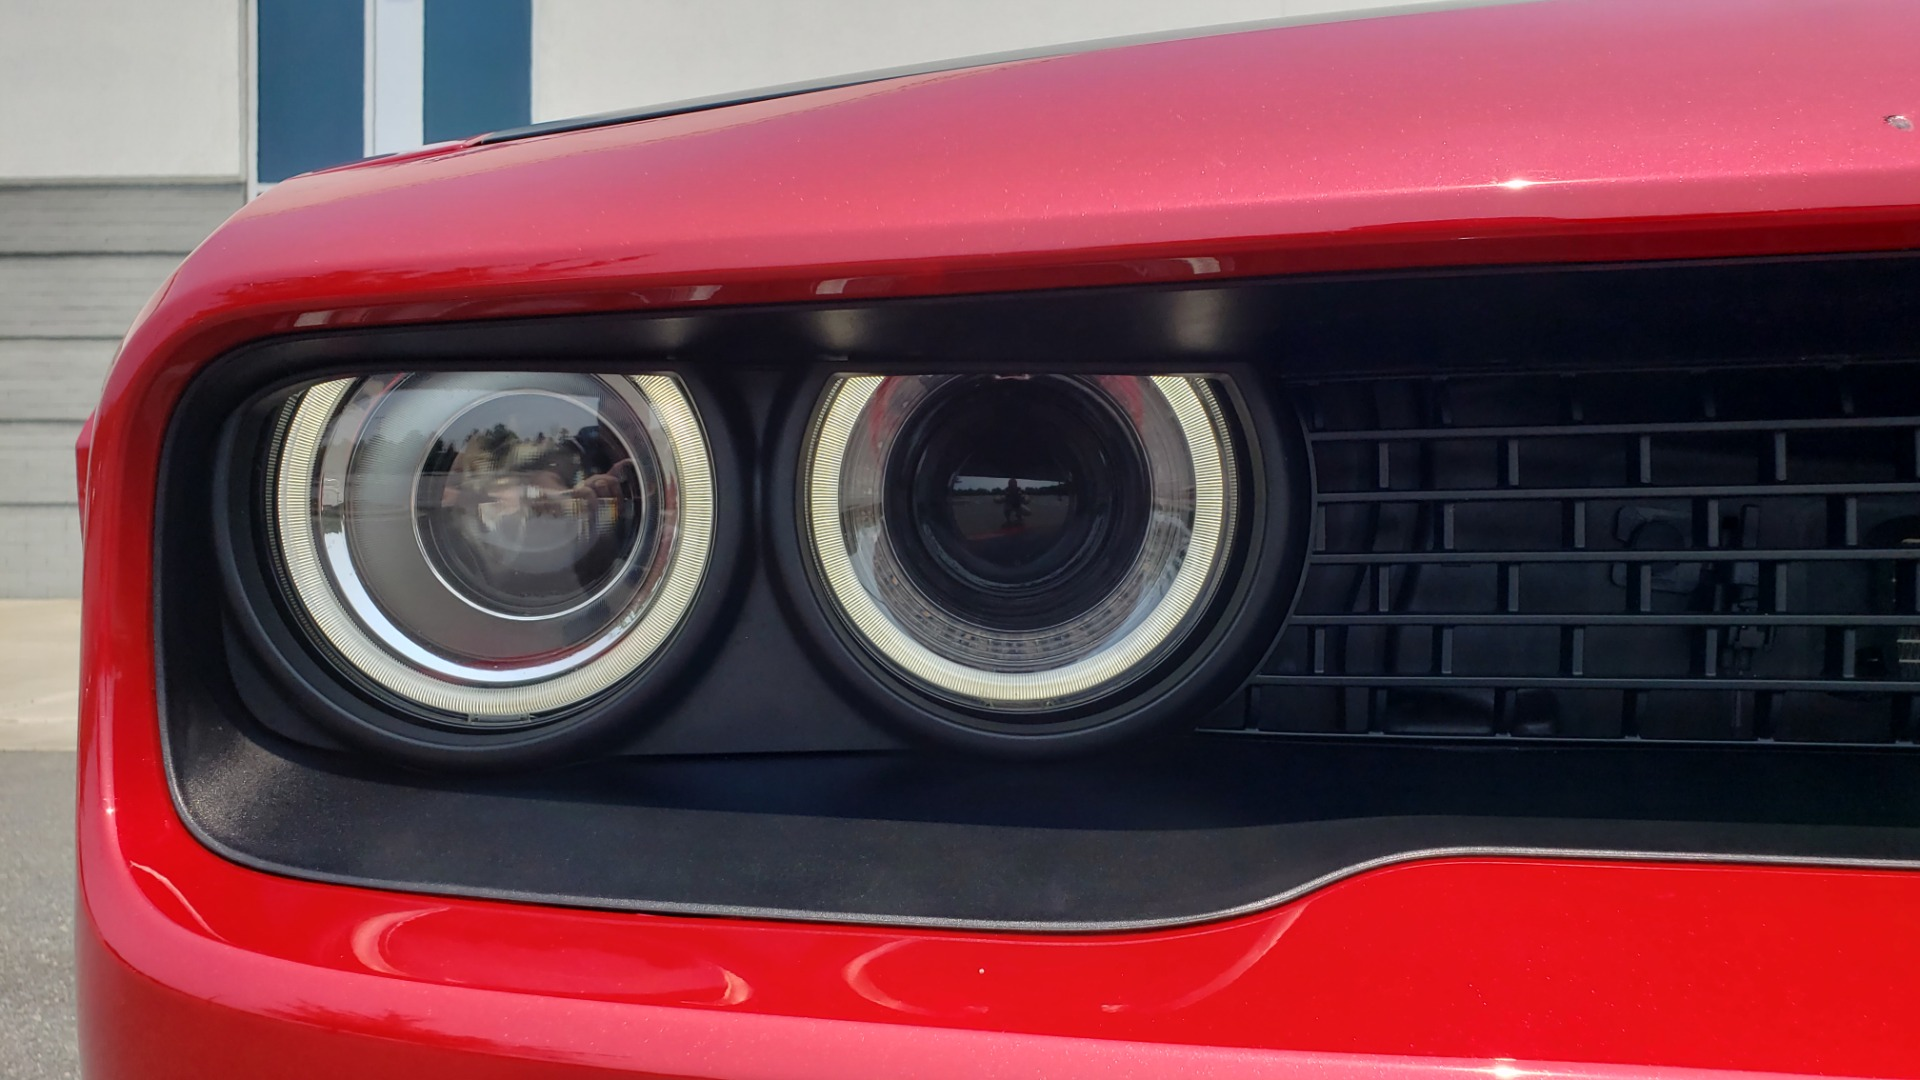 Used 2016 Dodge CHALLENGER SRT HELLCAT 707HP COUPE / AUTO / NAV / SUNROOF / H/K SND / REARVIEW for sale $60,995 at Formula Imports in Charlotte NC 28227 25